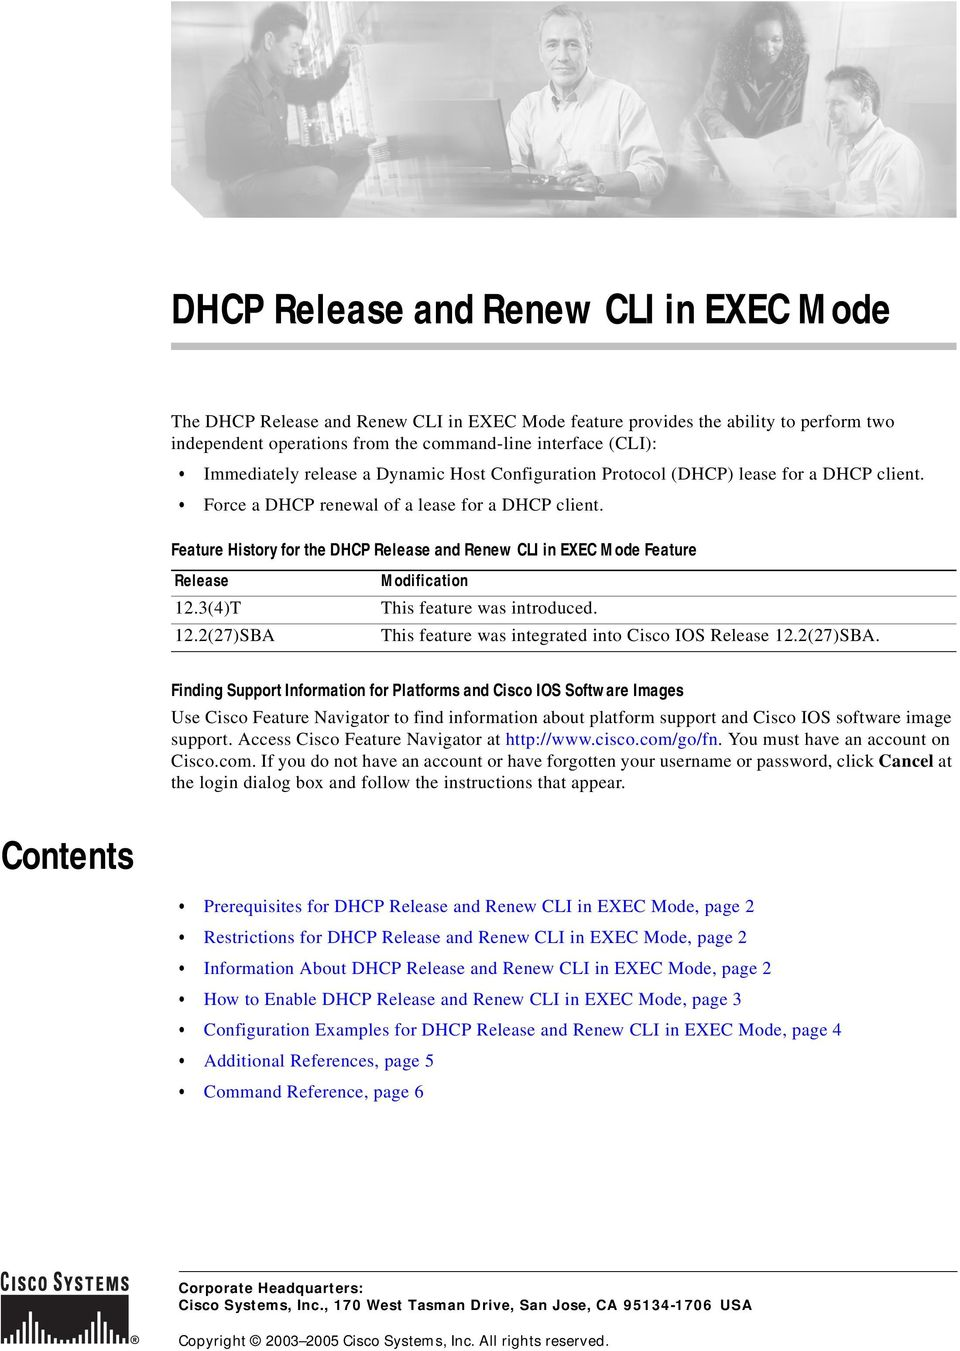 Feature History for the DHCP Release and Renew CLI in EXEC Mode Feature Release 12.3(4)T 12.2(27)SBA Modification This feature was introduced. This feature was integrated into Cisco IOS Release 12.